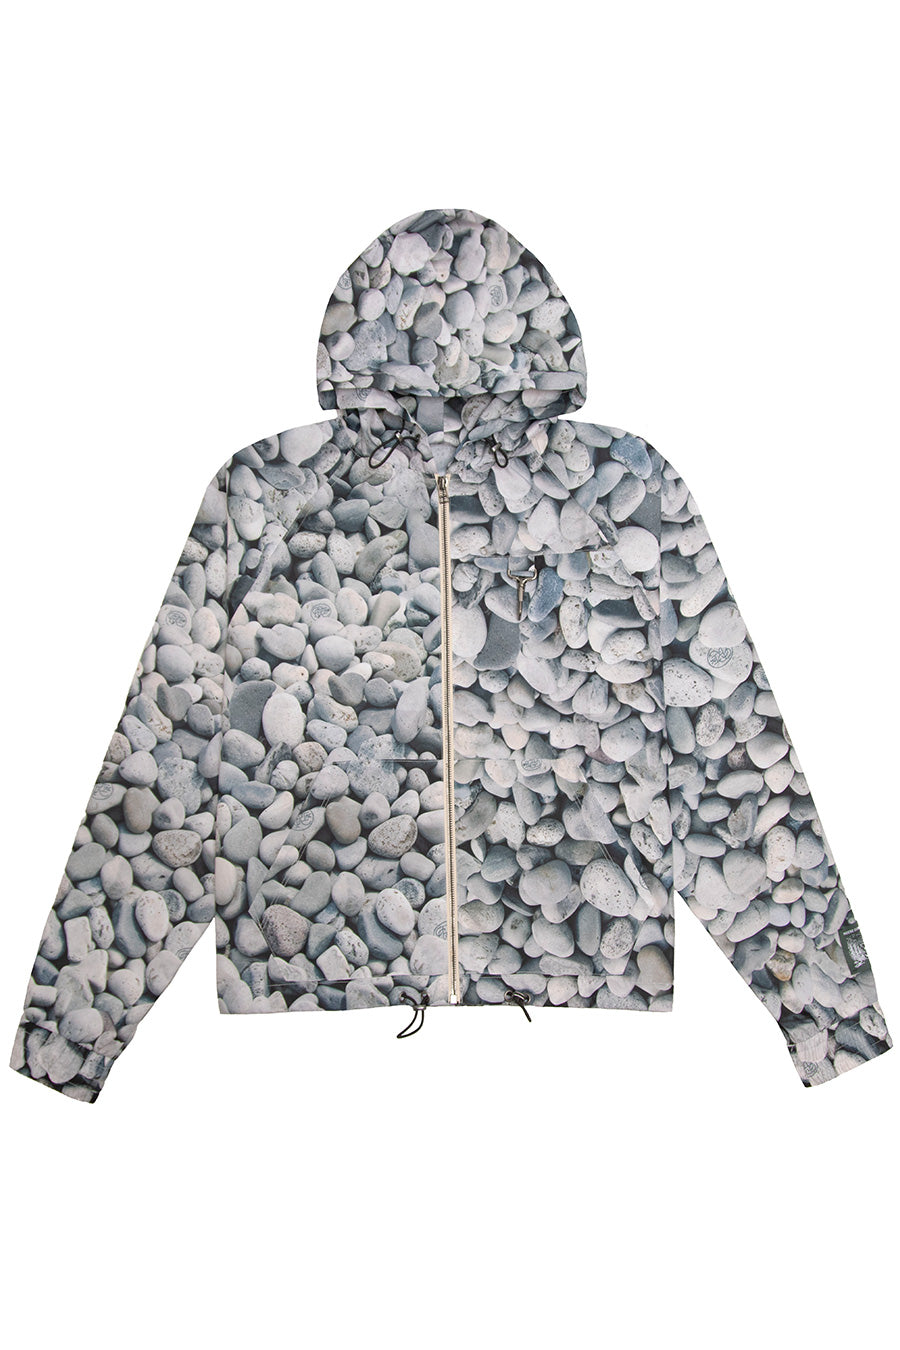 Reese Cooper - River Rock Camo Ripstop Zipped Hooded Jacket | 1032 SPACE